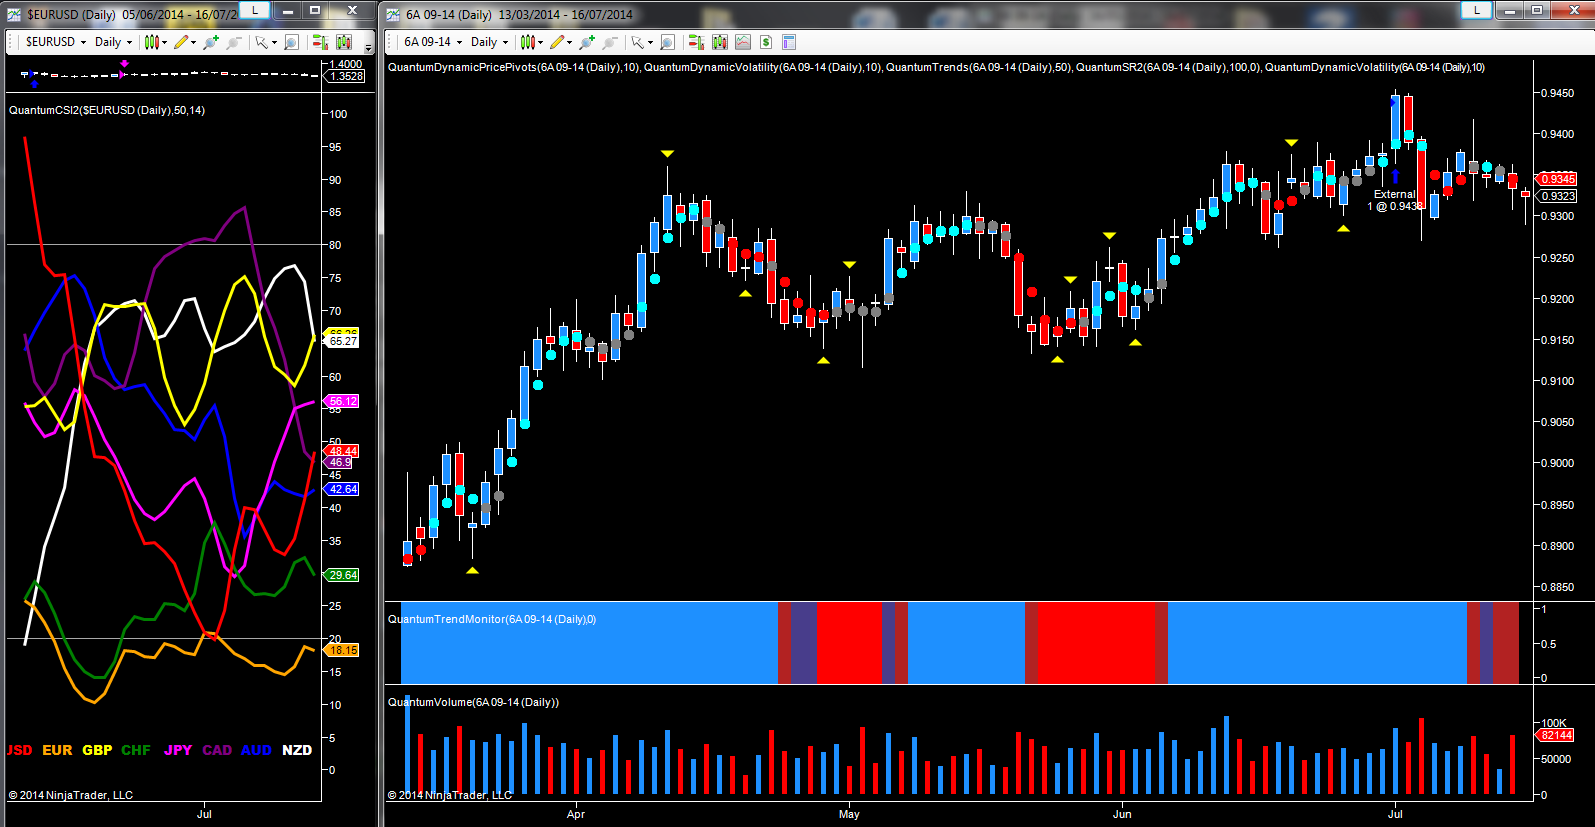 AUD/USD - September futures daily chart